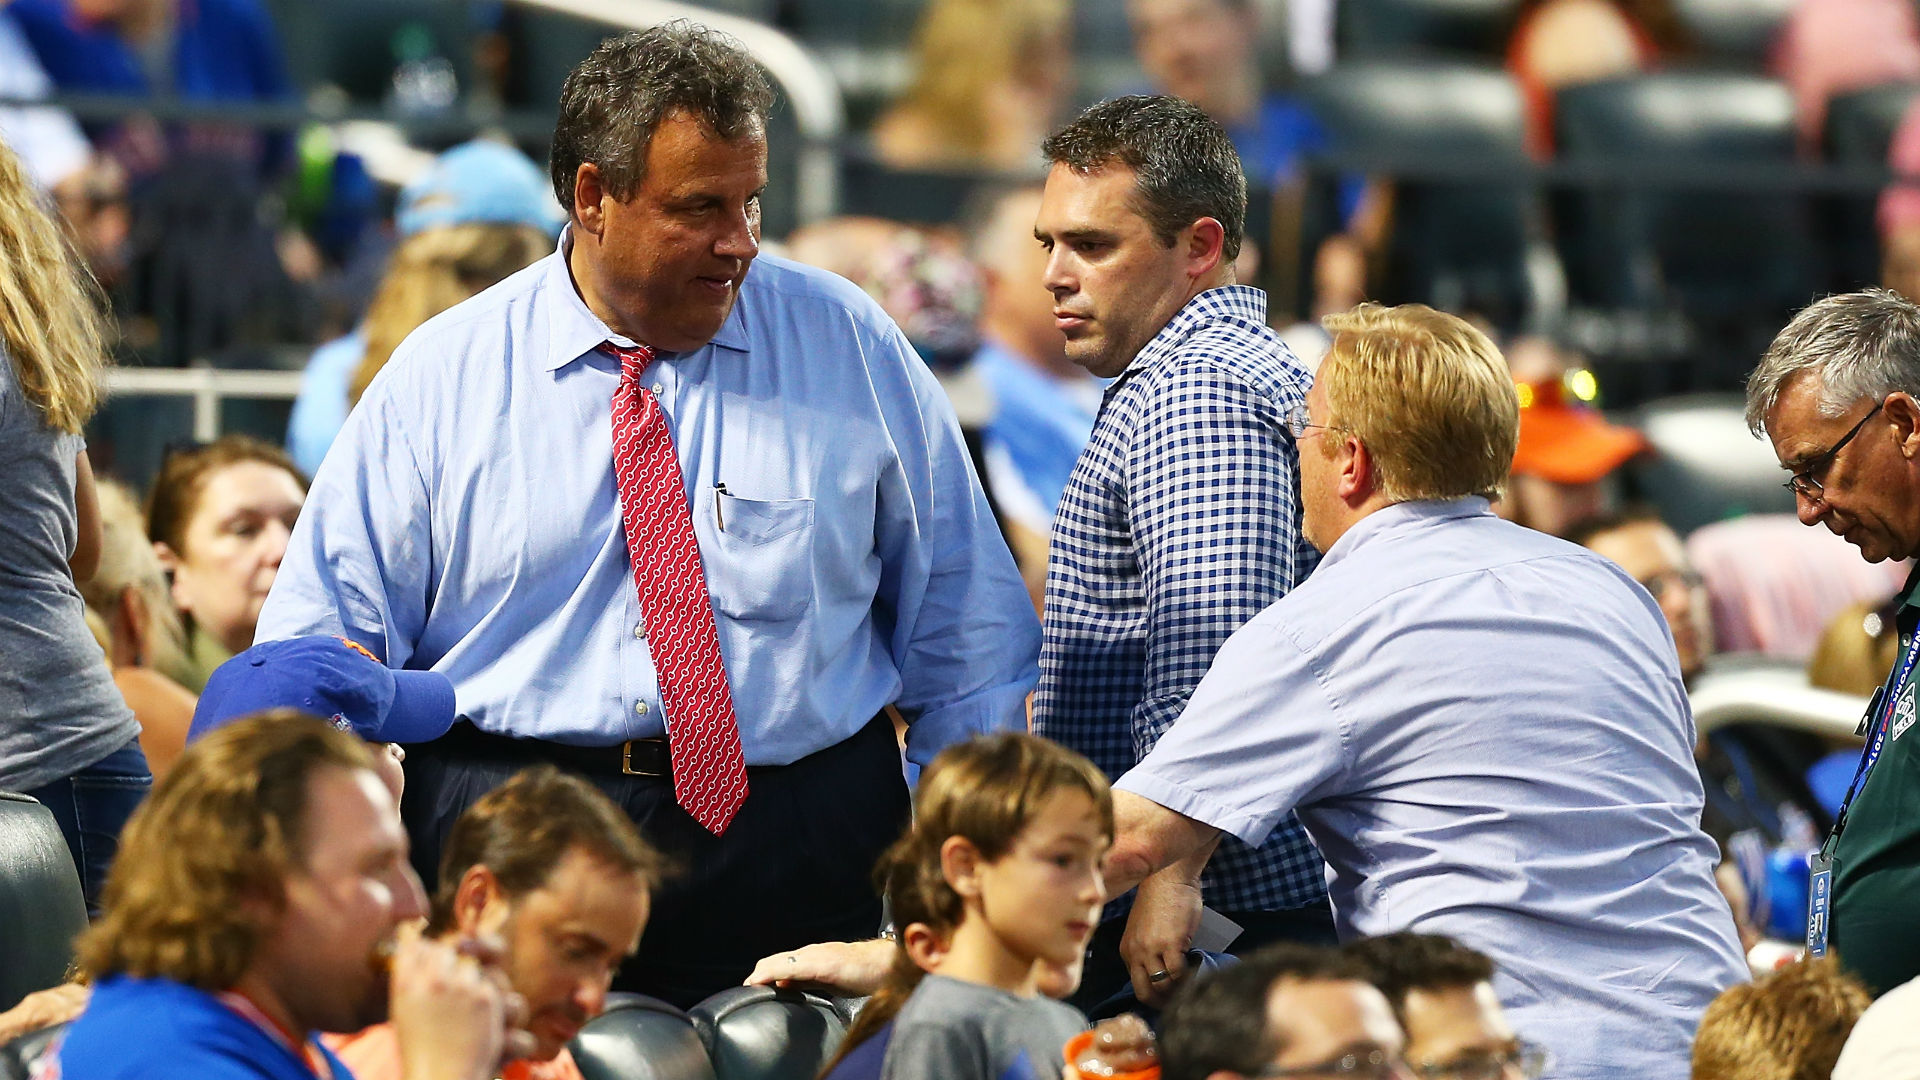 Gov. Chris Christie calls baseball fan a 'big shot' in heated conversation